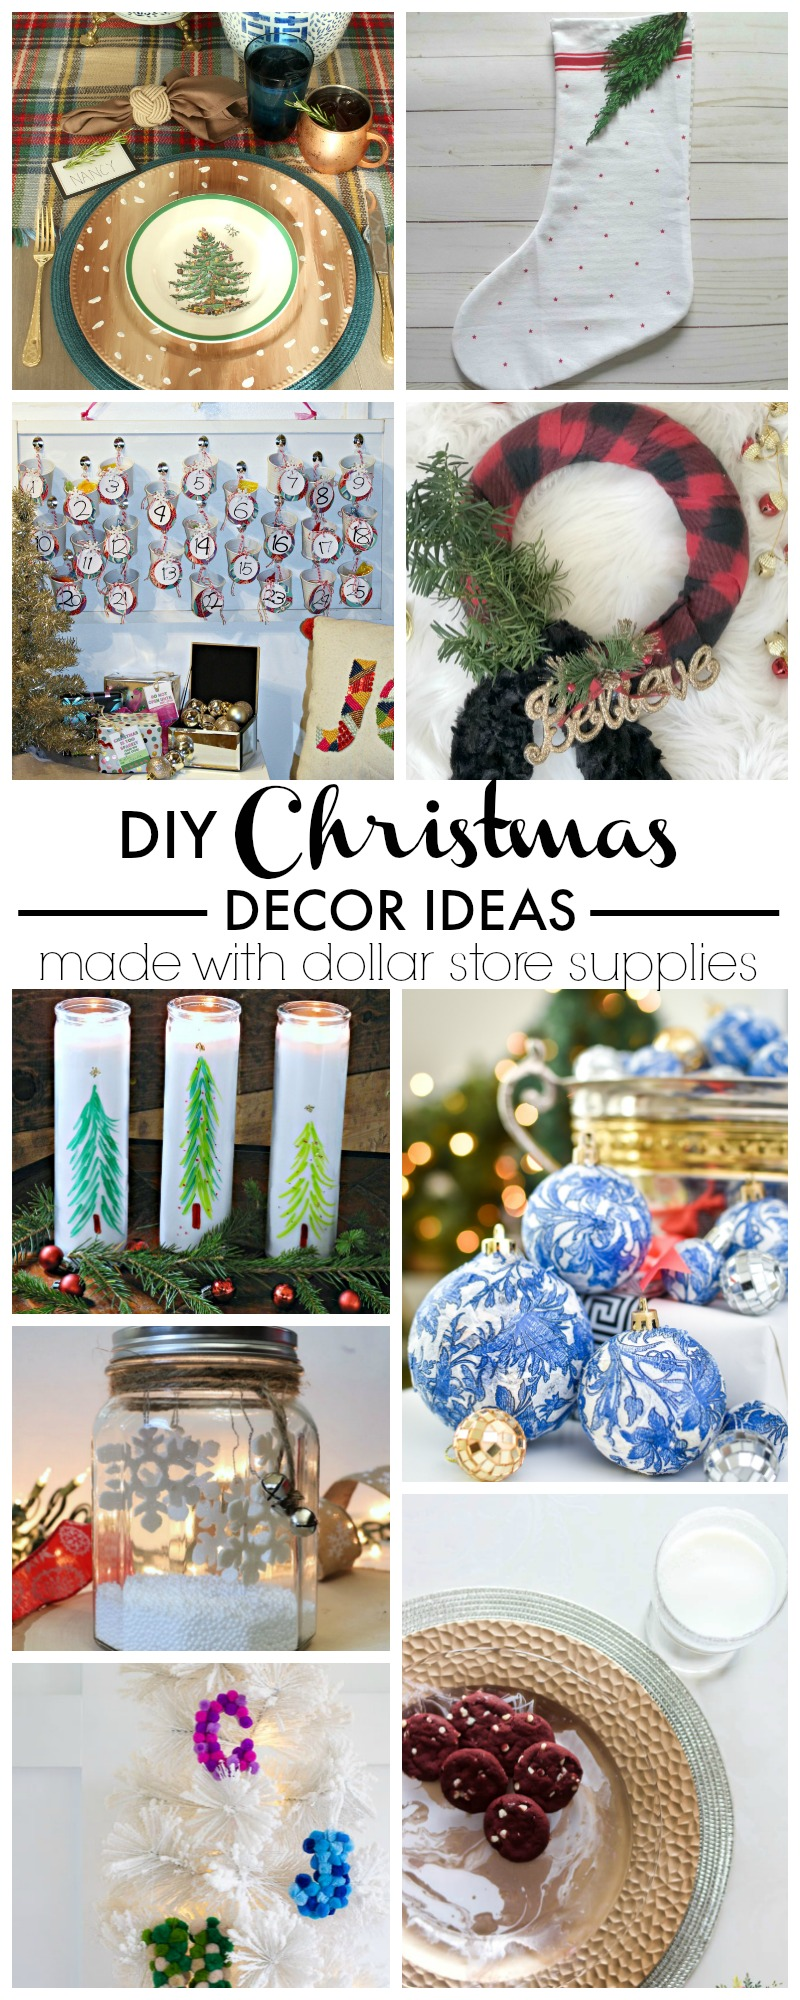 Make Dollar Store Christmas Tree Candles easily with a dollar store candle and a few permanent marker sharpies!